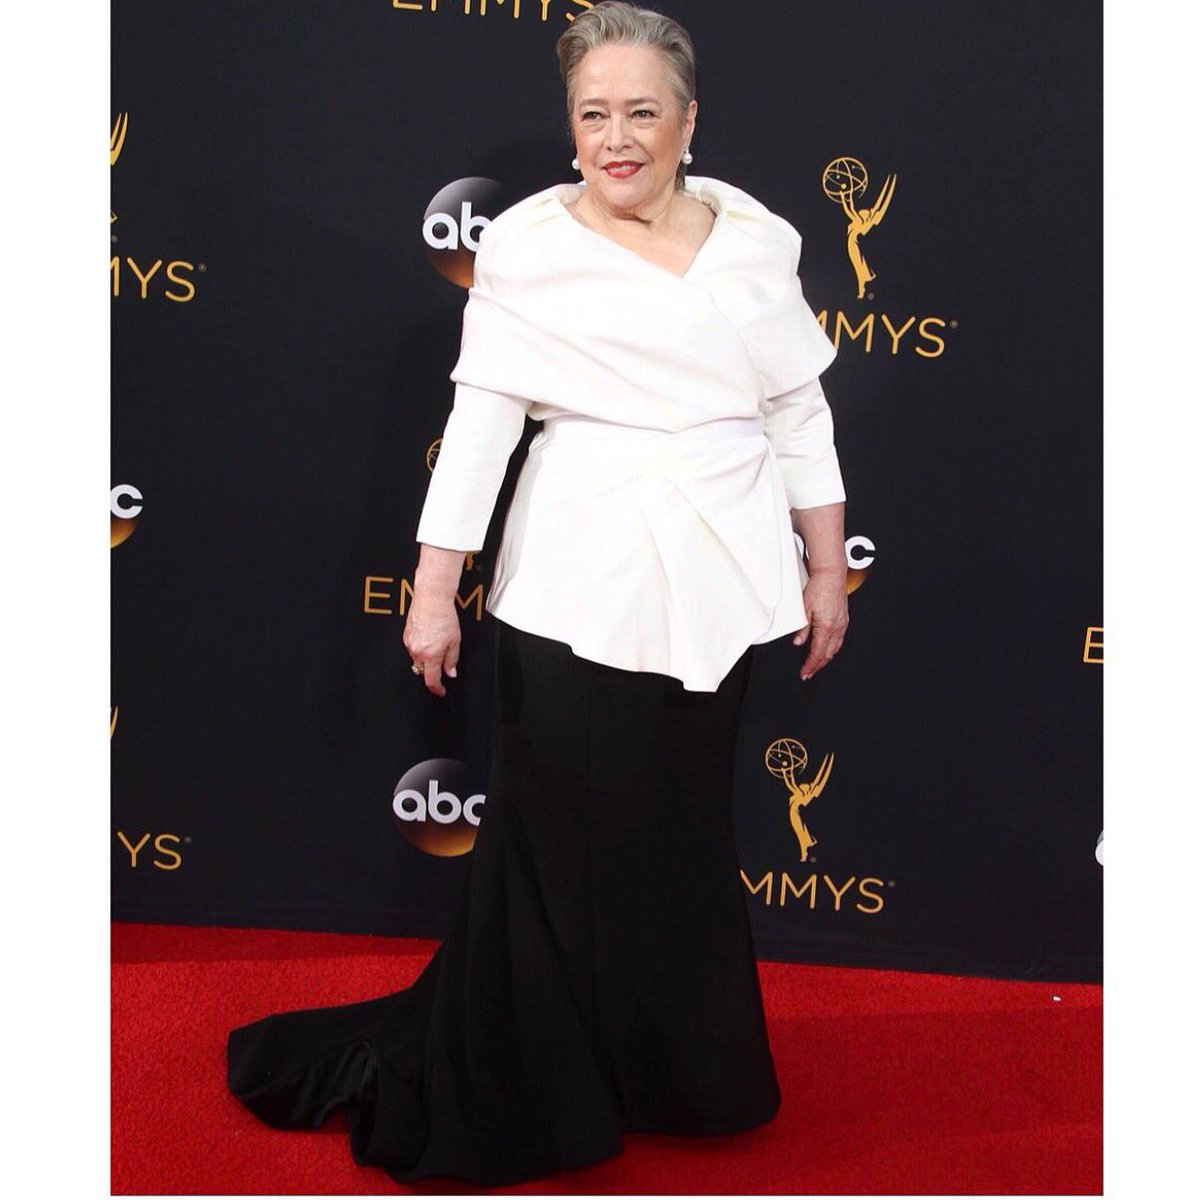 It's almost Emmy award season so here is a #TBT to this fabulous moment with queen #kathybates